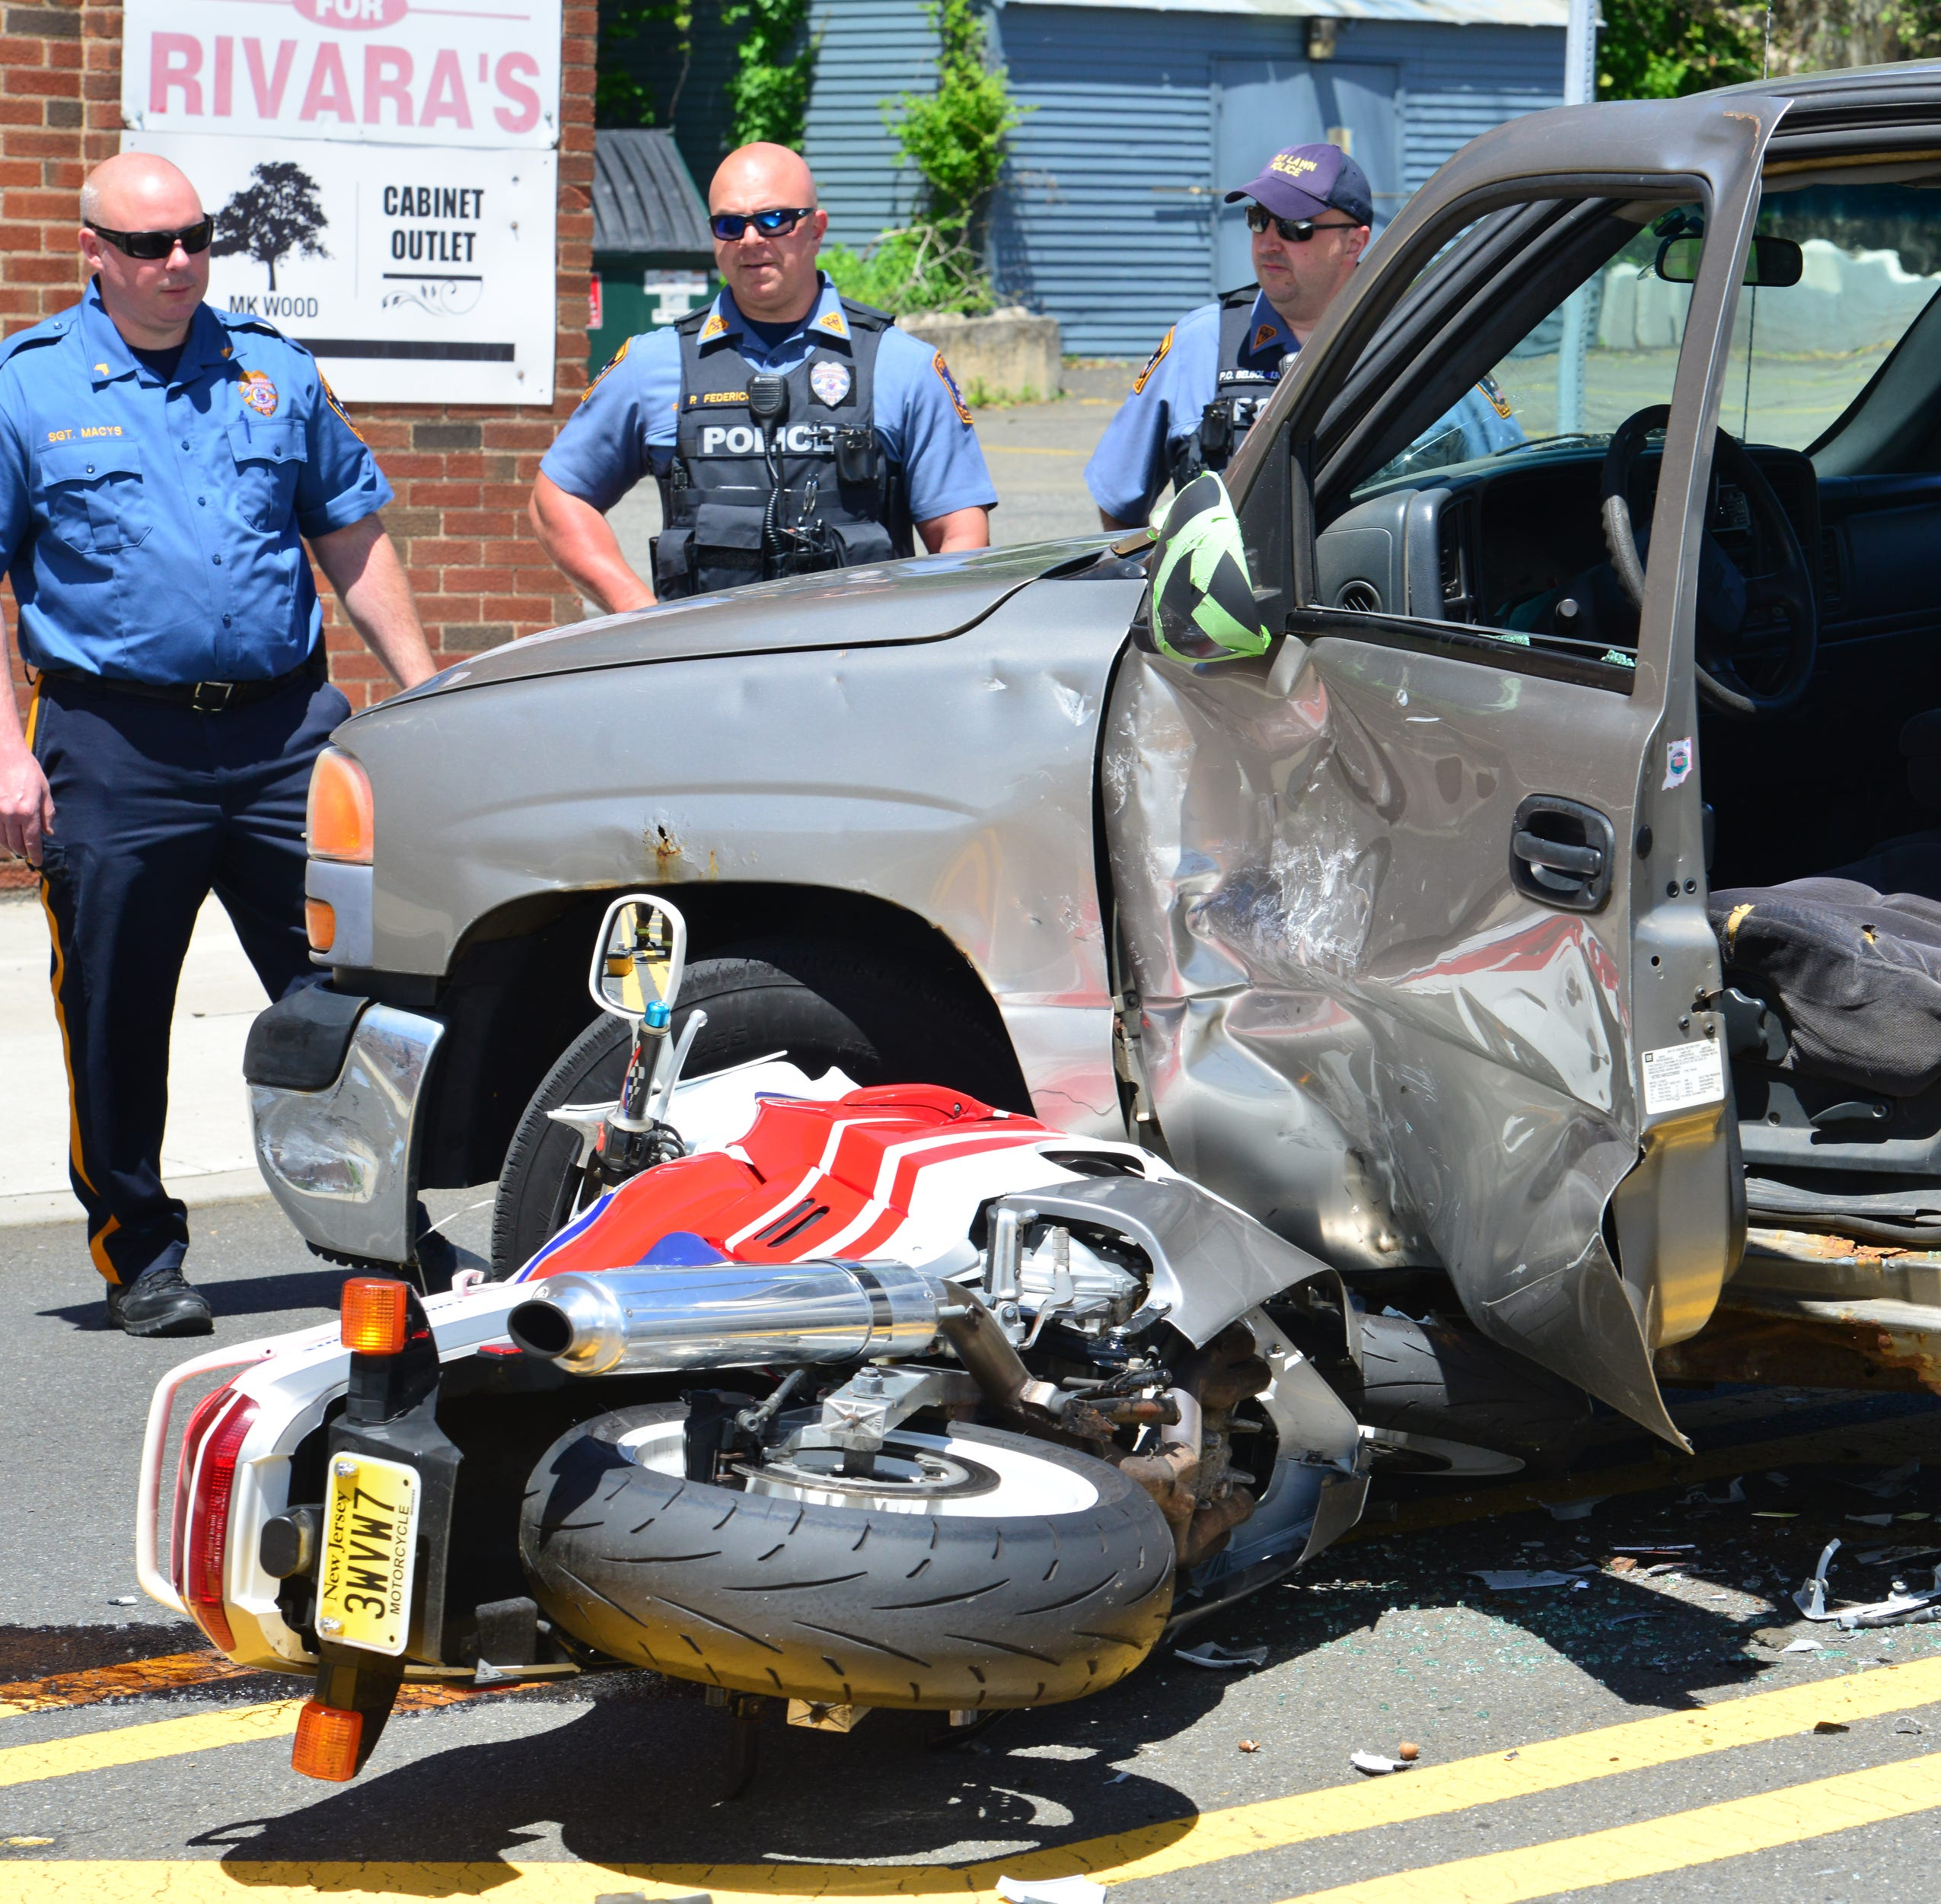 Franklin Lakes man injured in motorcycle crash in Fair Lawn